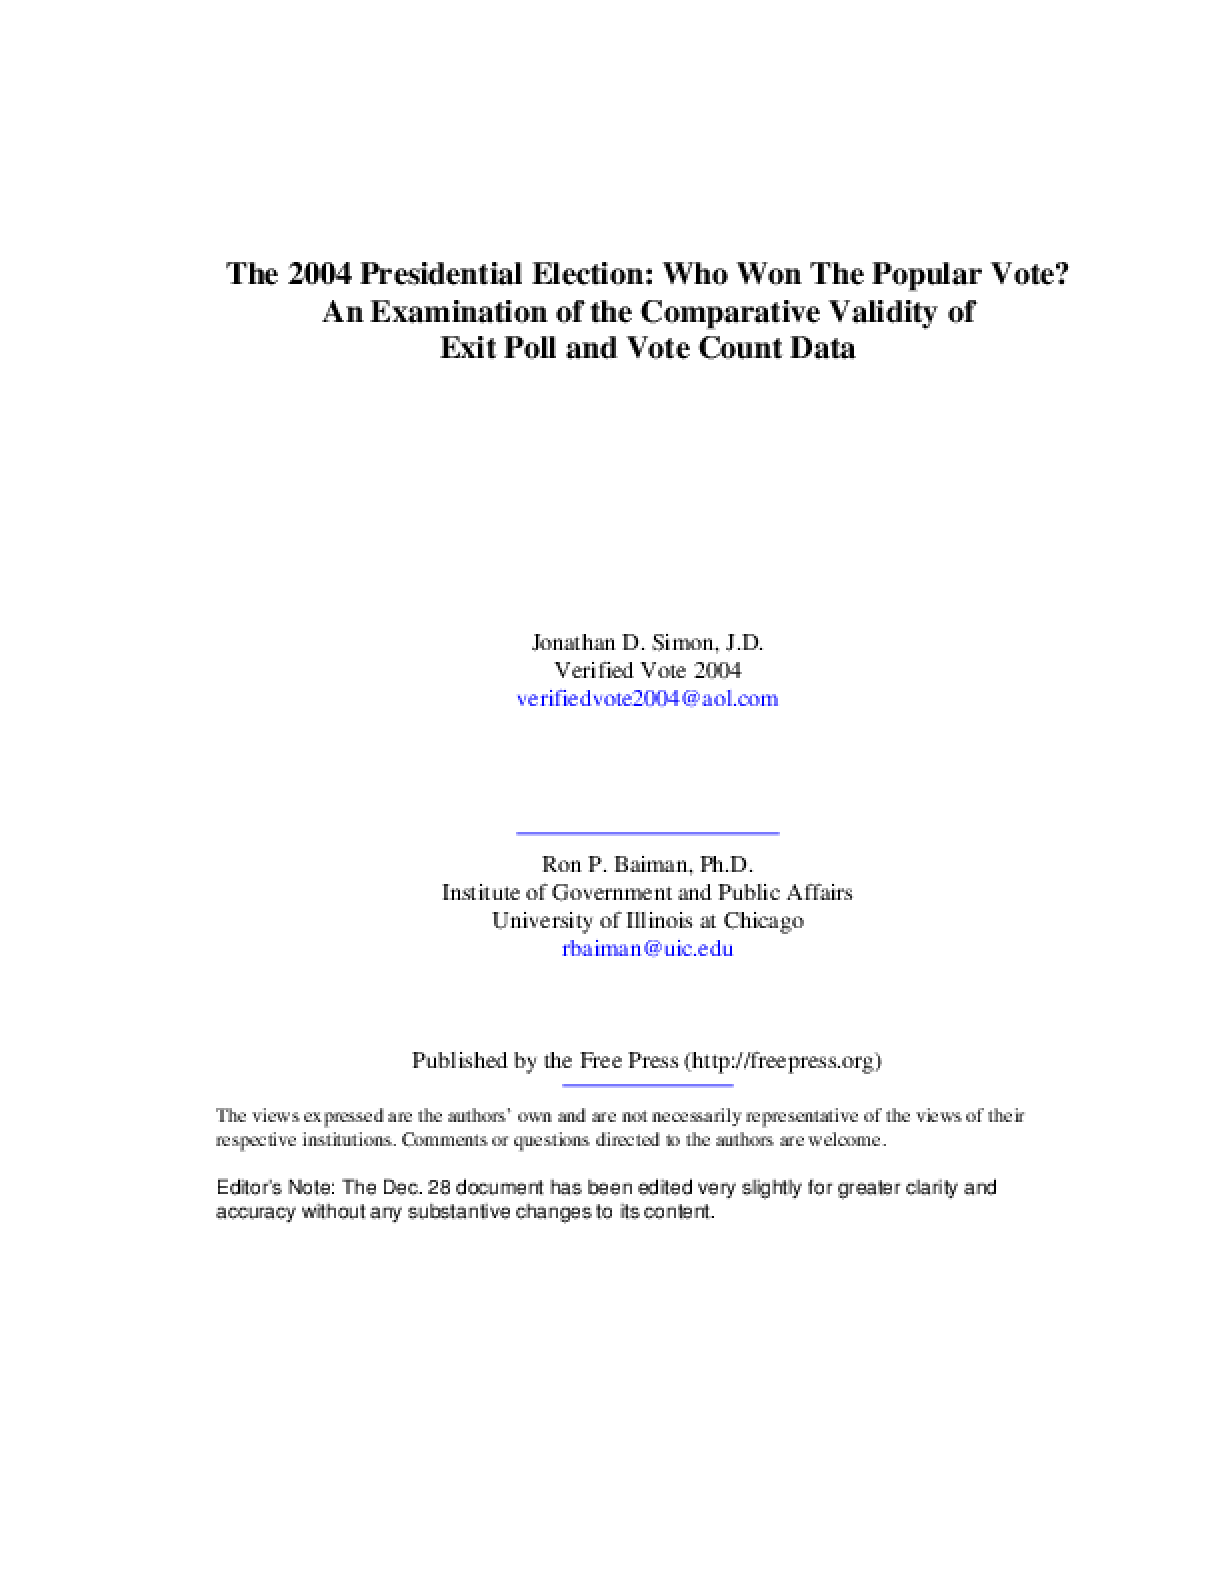 2004 Presidential Election: Who Won The Popular Vote? An Examination of the Comparative Validity of Exit Poll and Vote Count Data